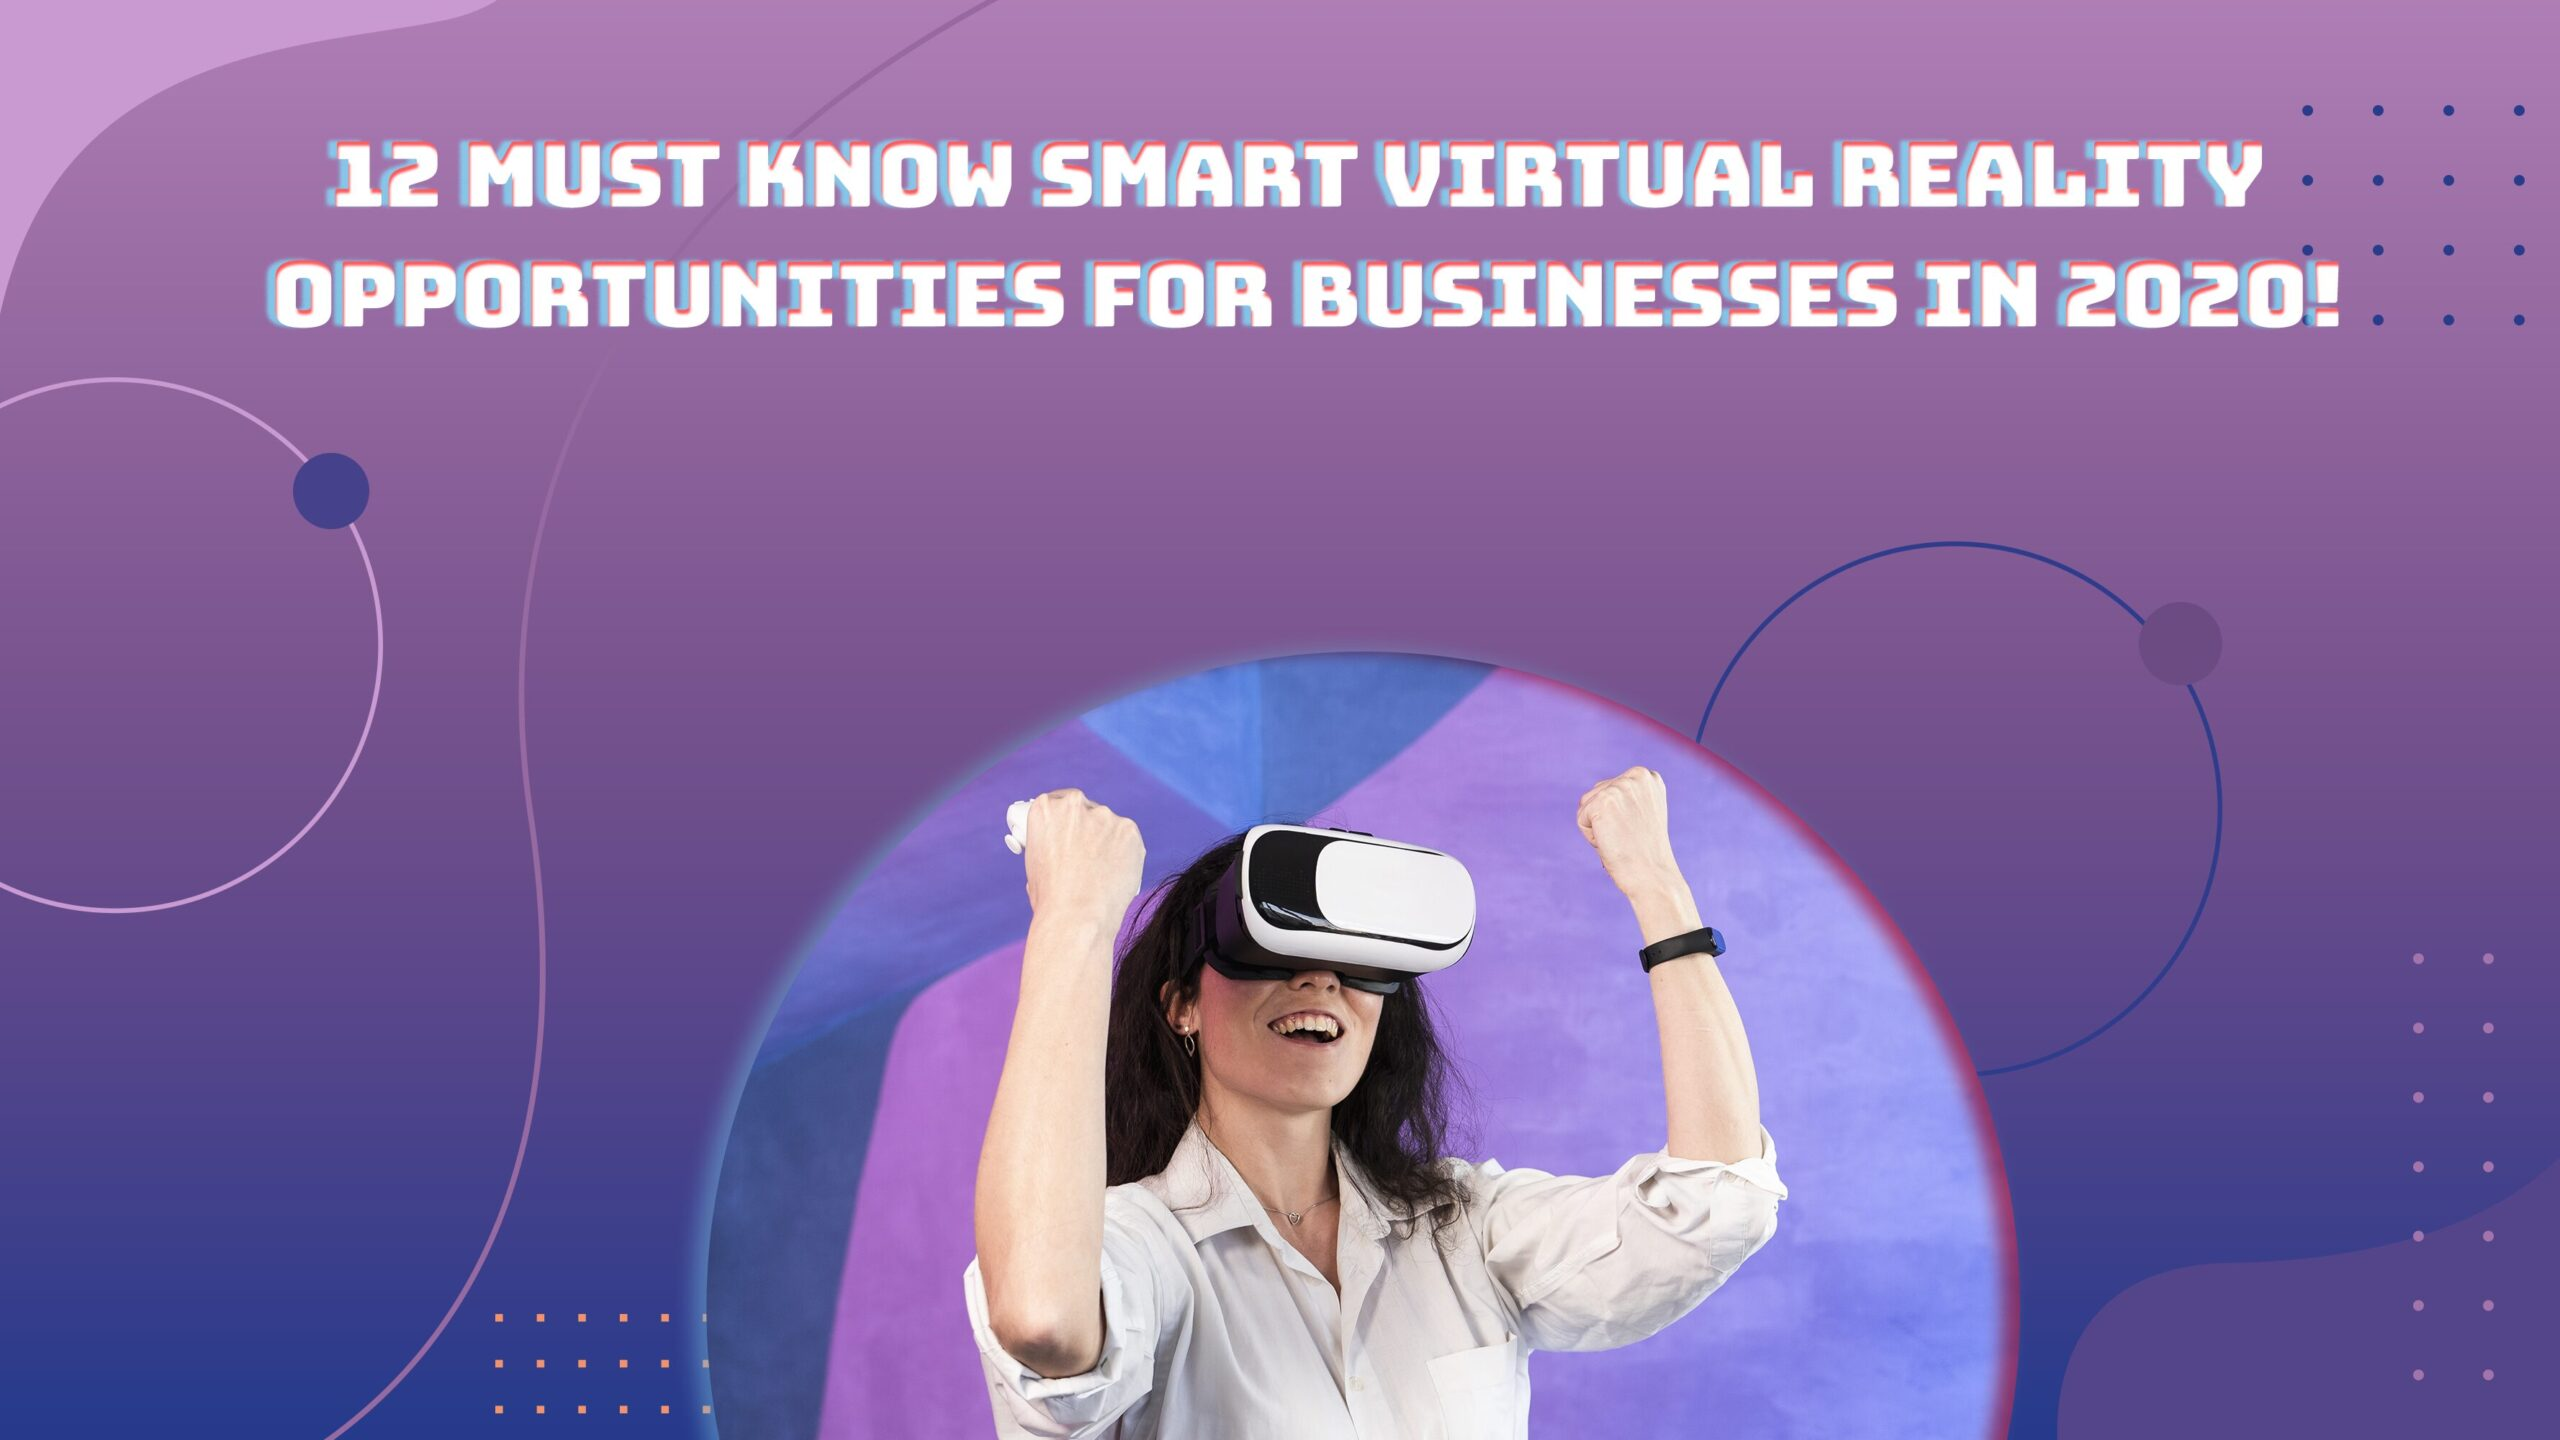 12 Must-Know Smart Virtual Reality Opportunities for Businesses in 2020